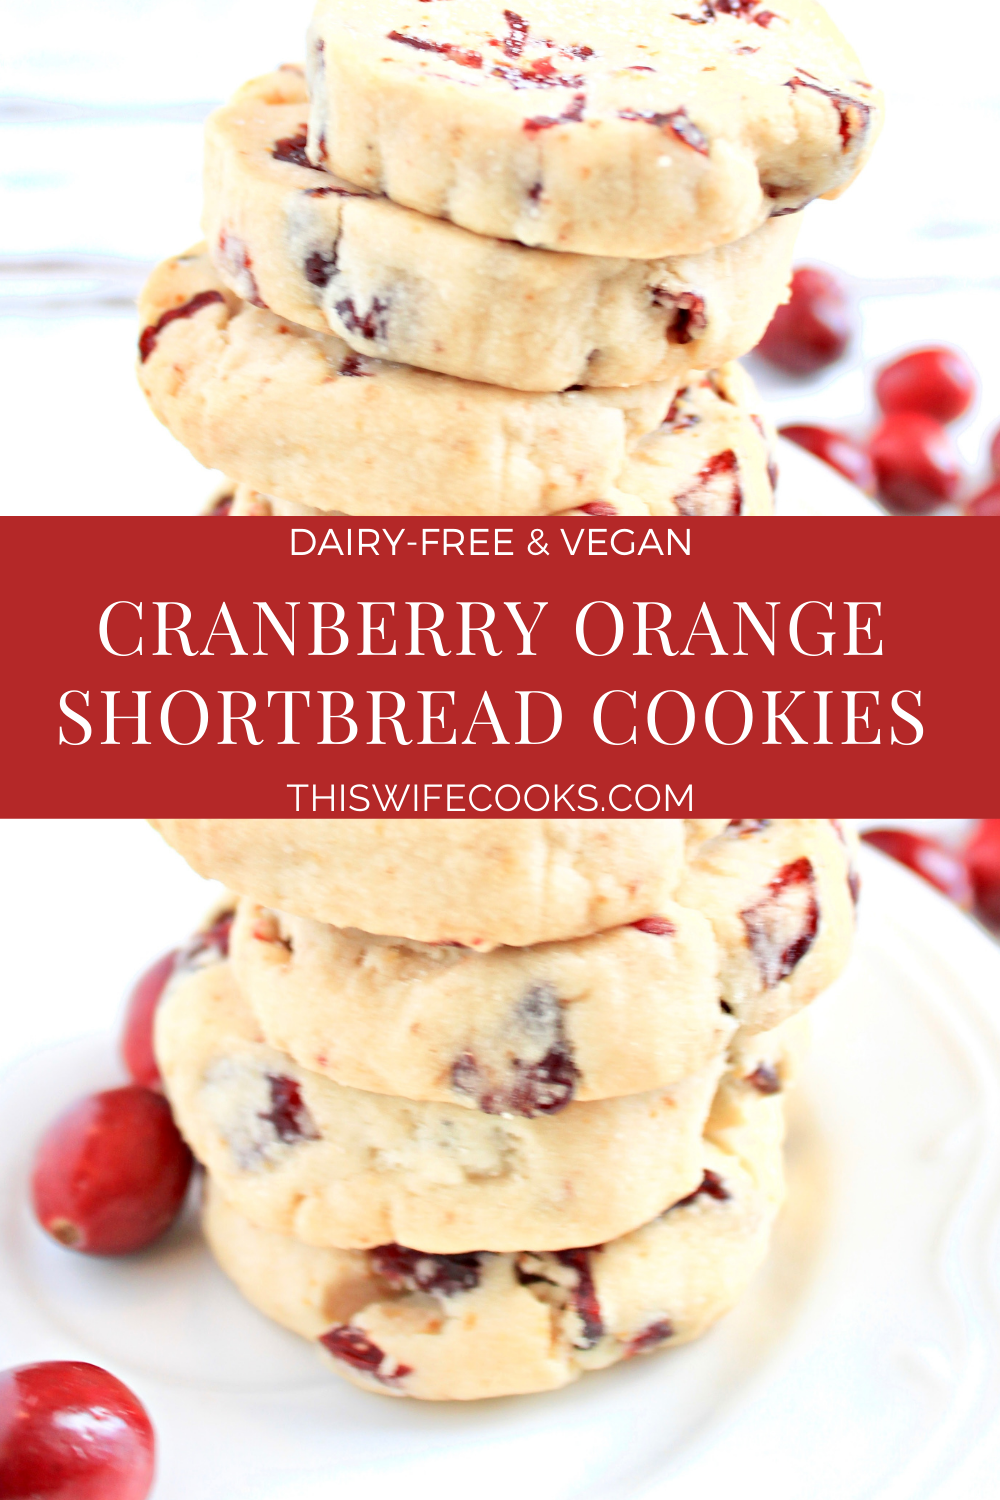 Cranberry Orange Shortbread Cookies ~ Classic fall and holiday flavors in a buttery, easy to make, slice and bake cookie. Perfect for gifting! via @thiswifecooks